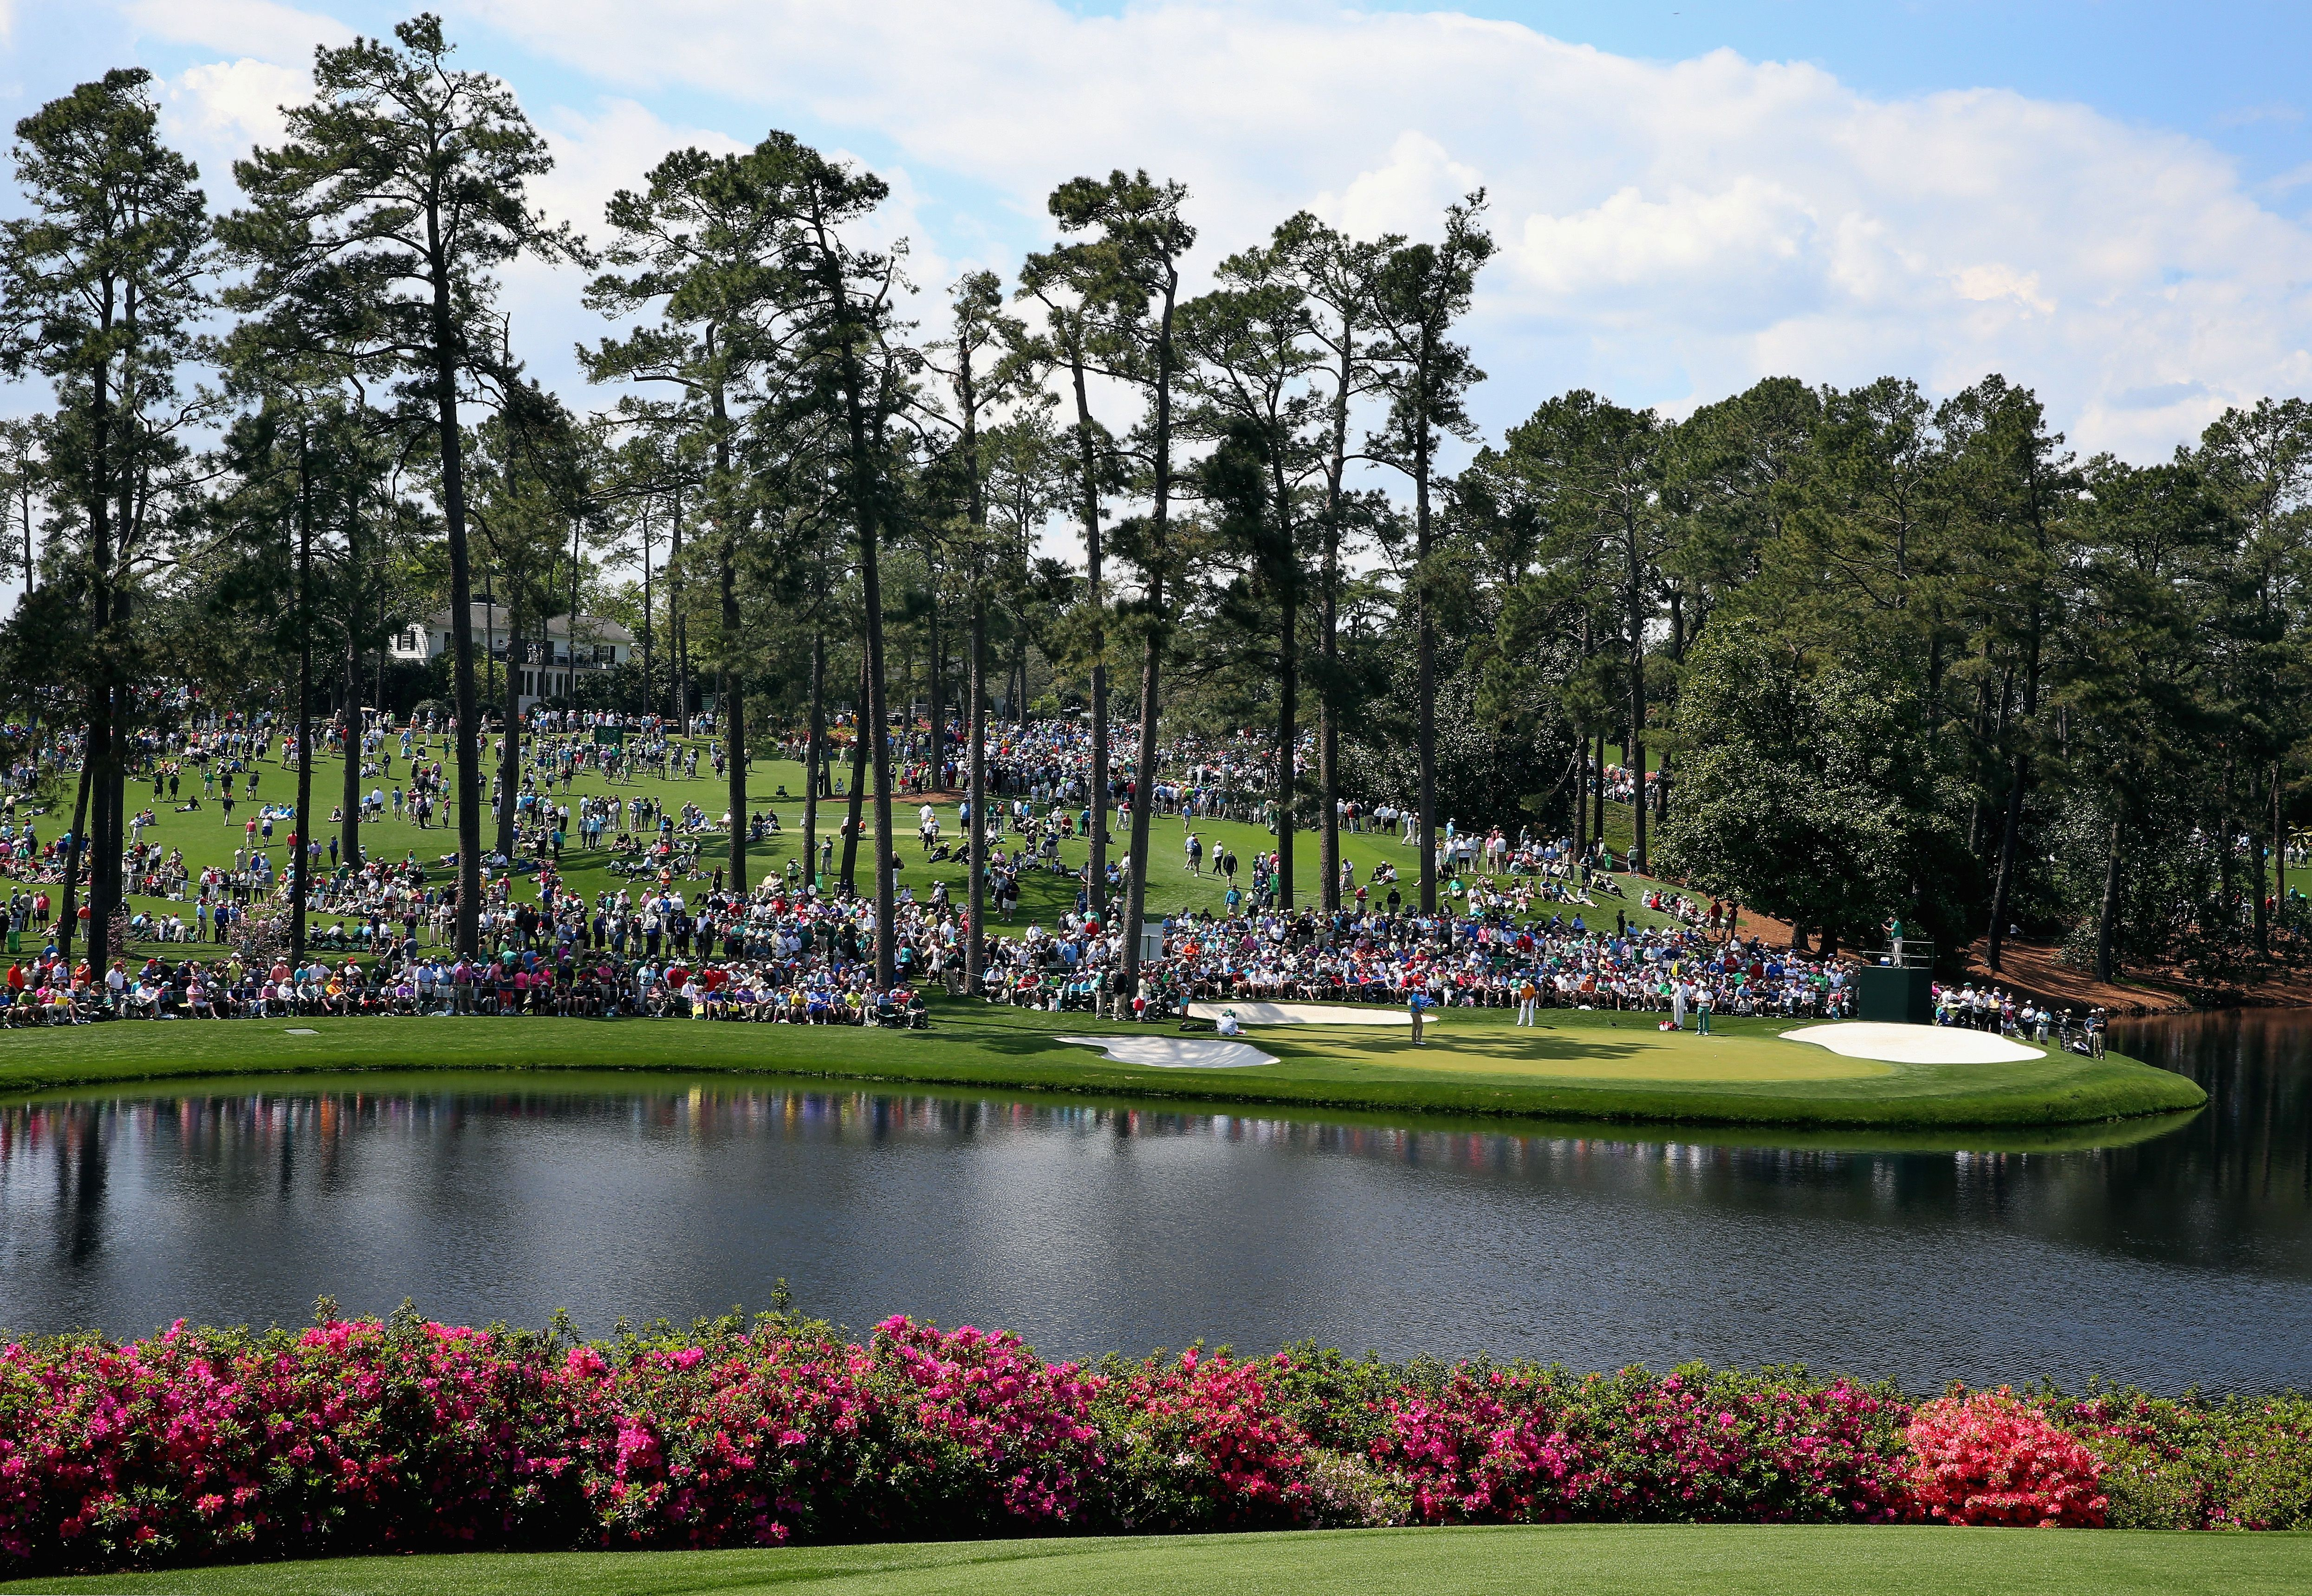 General view across the Par-3 Course at Augusta National.